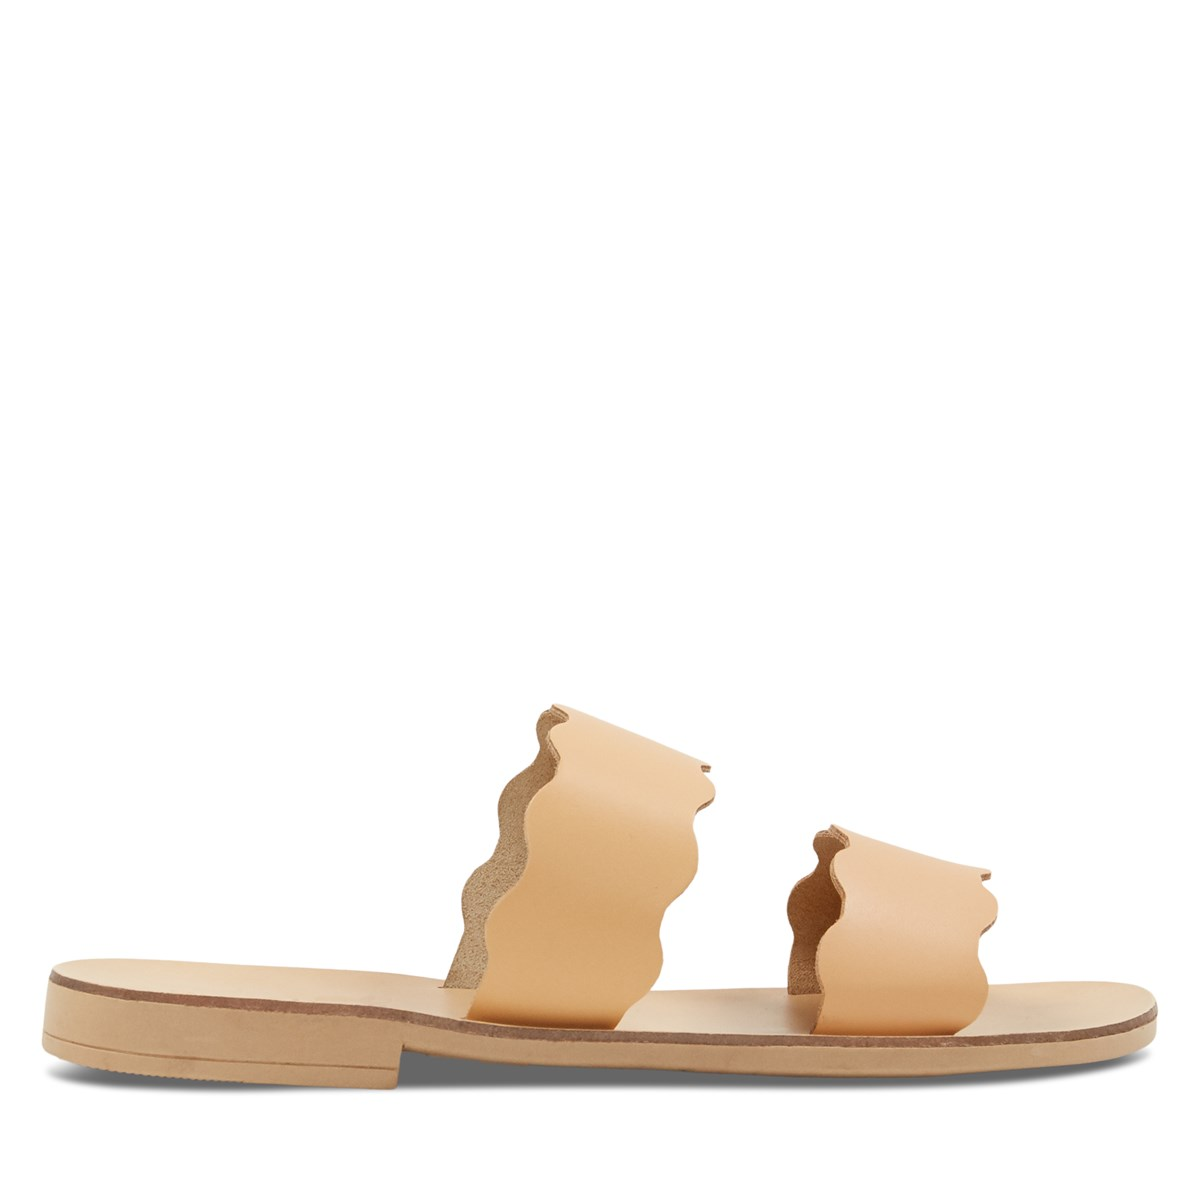 Women's Zoe Slip-On Sandals in Beige